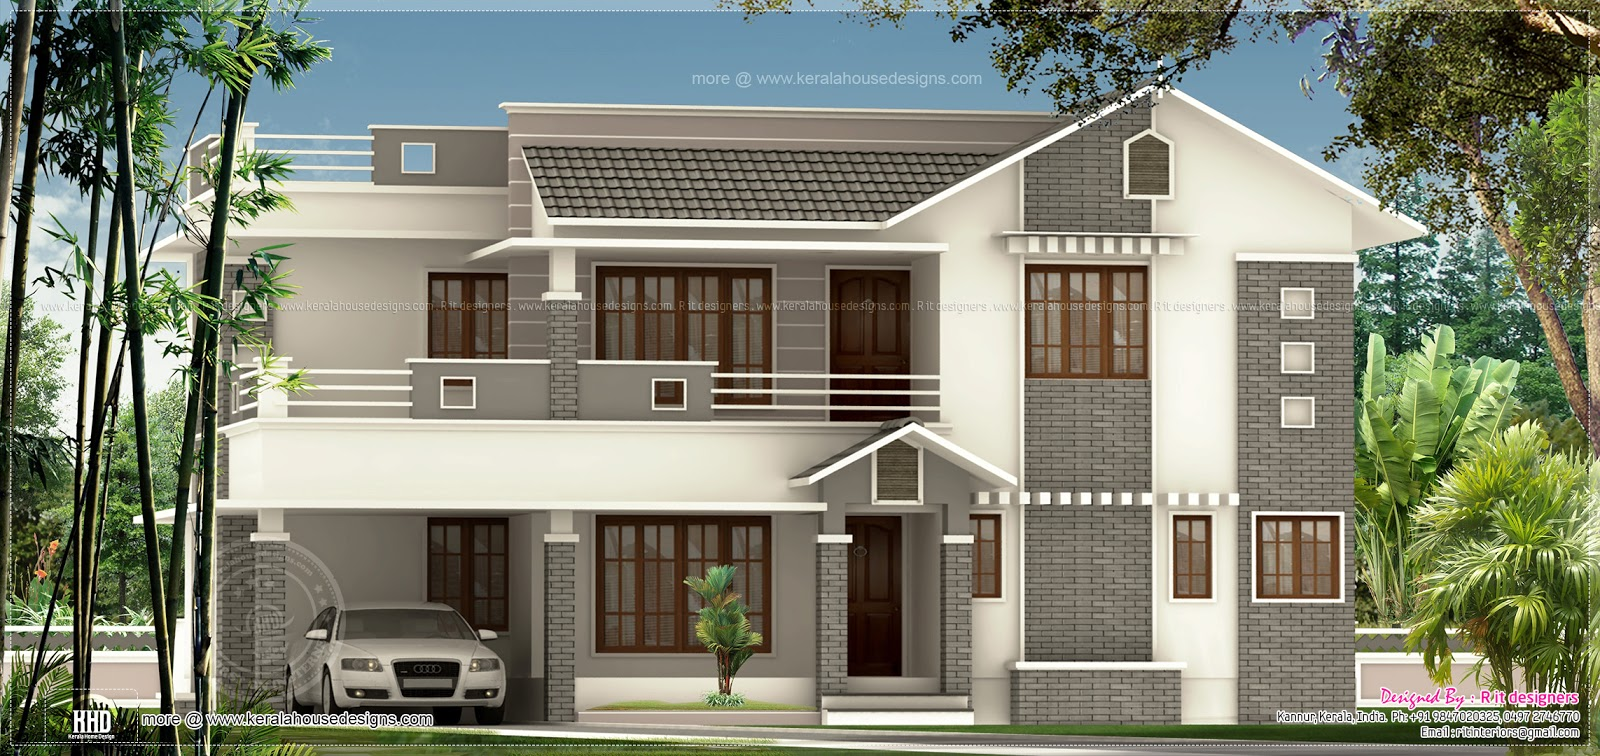 Changing The Front Elevation Of A House : Square feet bedroom exterior home kerala plans